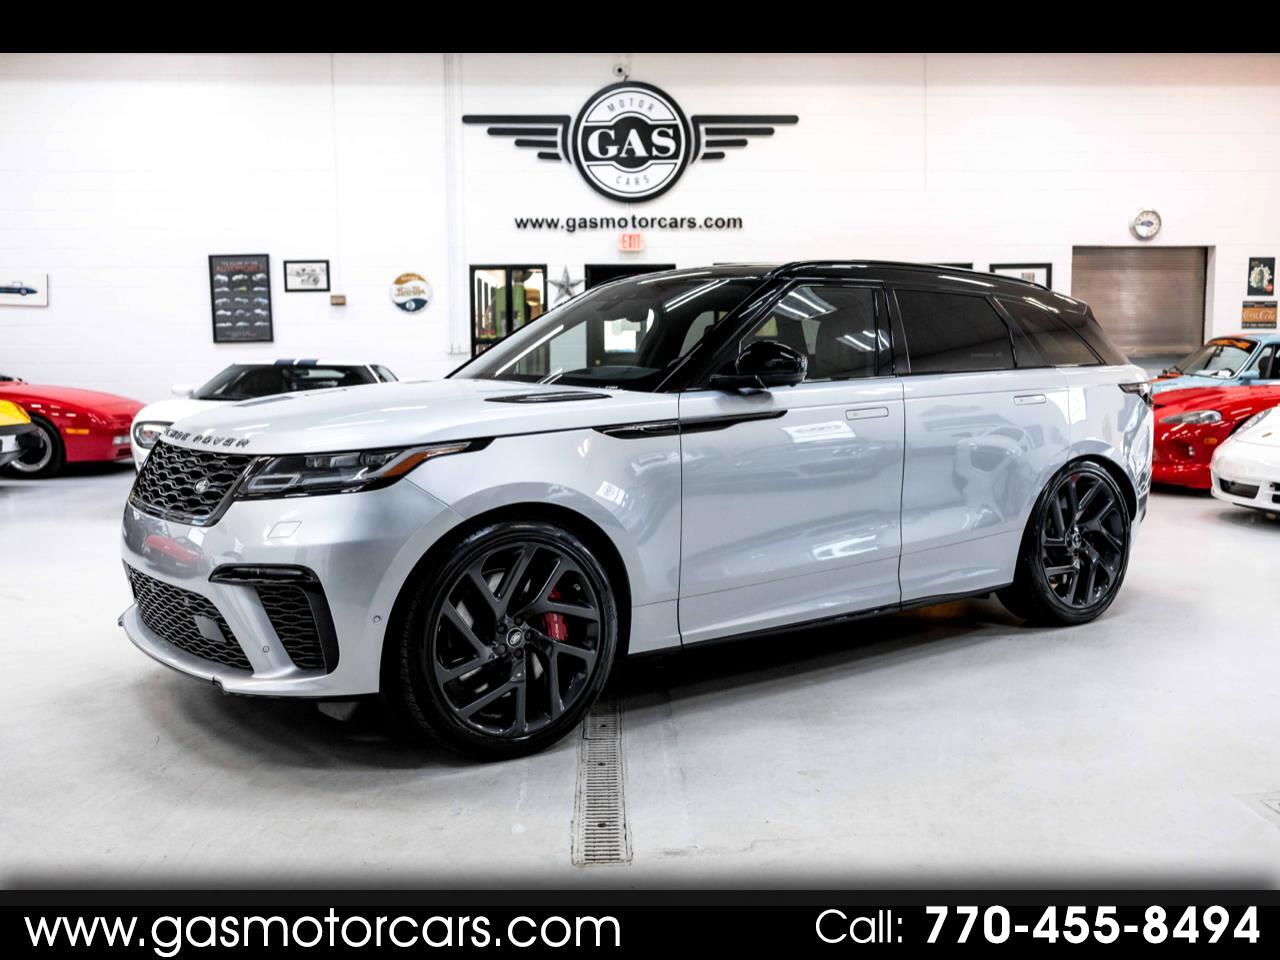 Land Rover Range Rover Velar SV Autobiography Dynamic Edition 2020